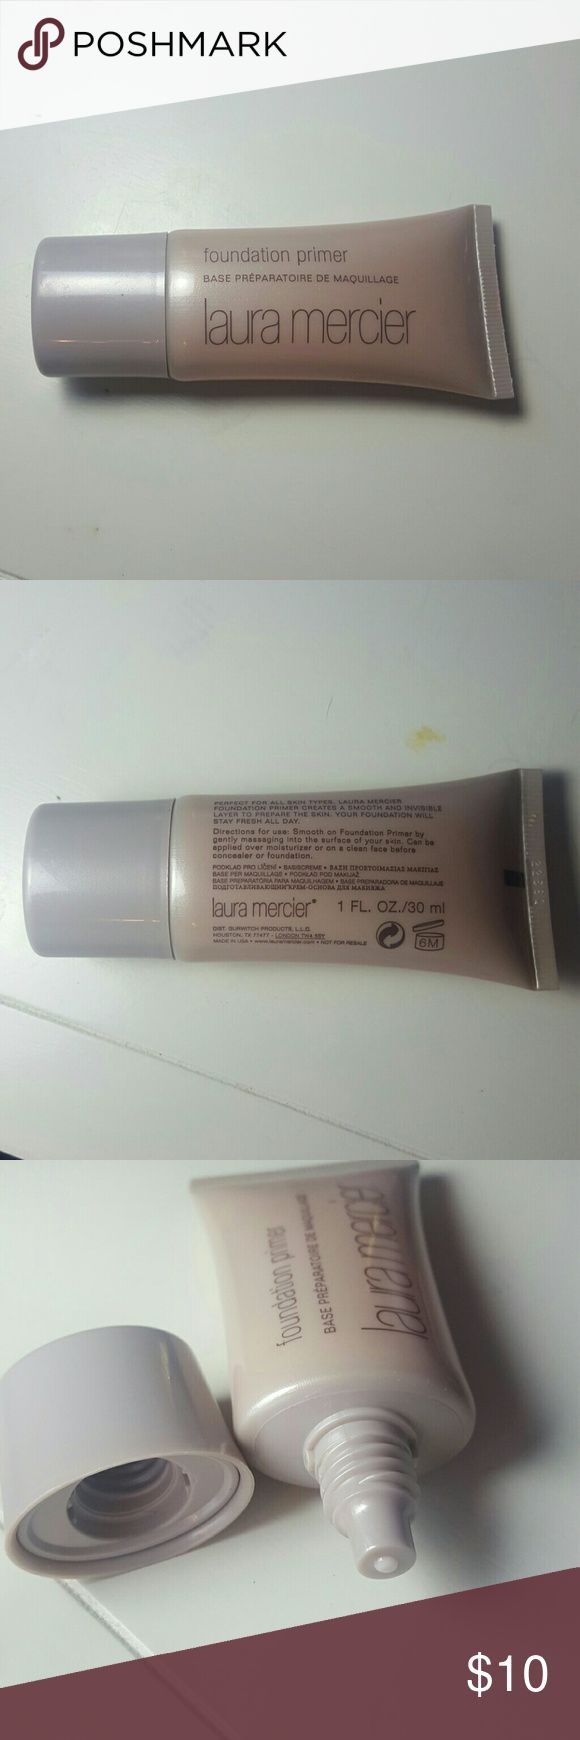 Laura Mercier Foundation Primer 1oz Laura Mercier Foundation Primer 1oz. Brand new, never used. This primer is water-based and thus I couldn't use it with my foundation. Laura Mercier  Makeup Face Primer